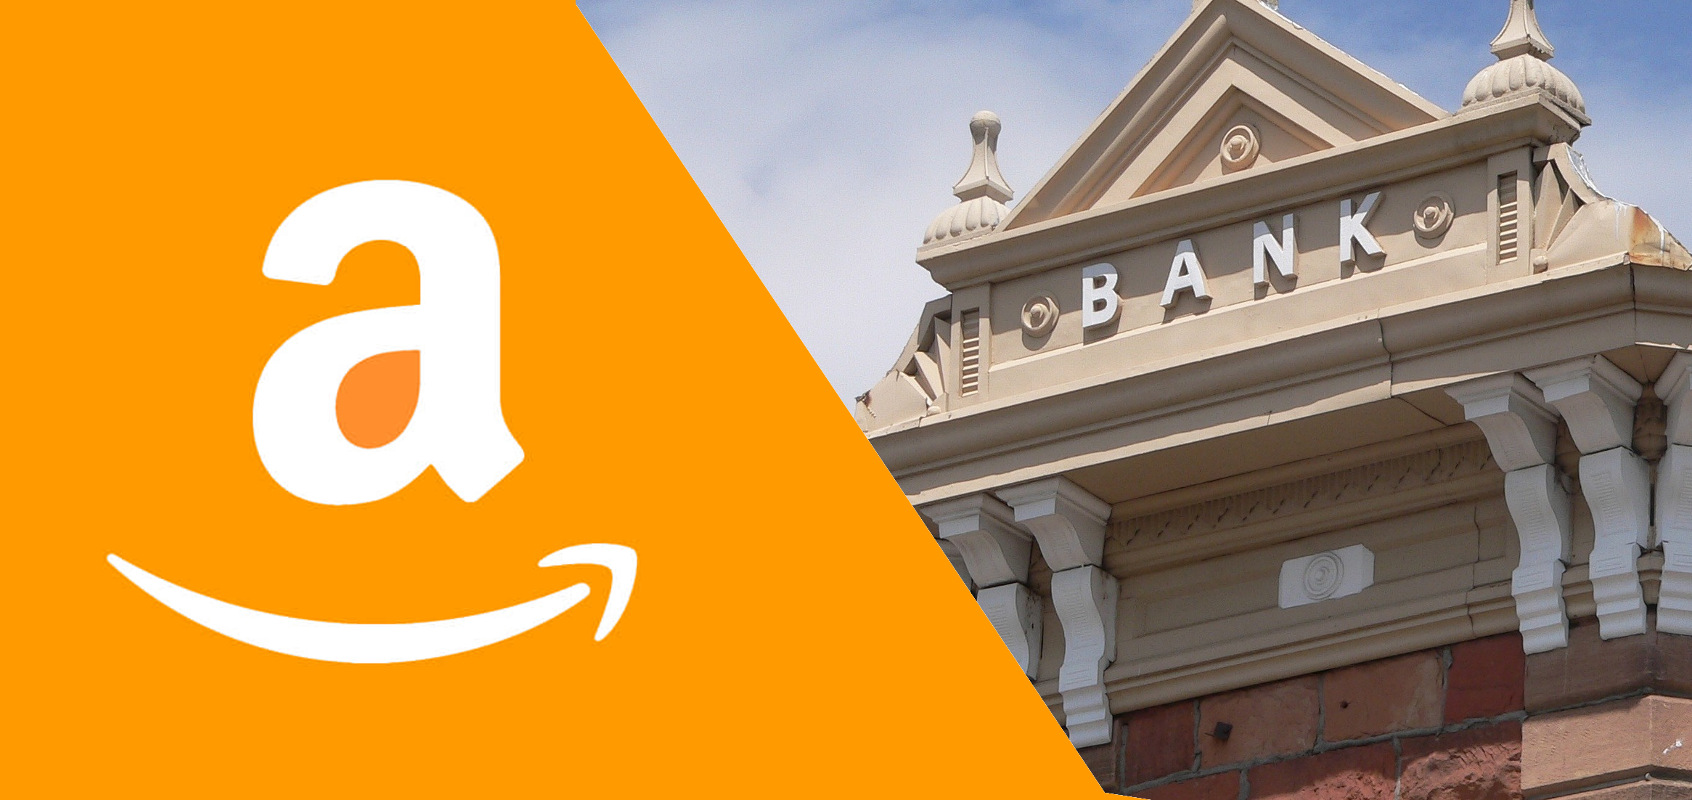 https://banks.org/wp-content/uploads/2018/07/amazon-bank.jpg